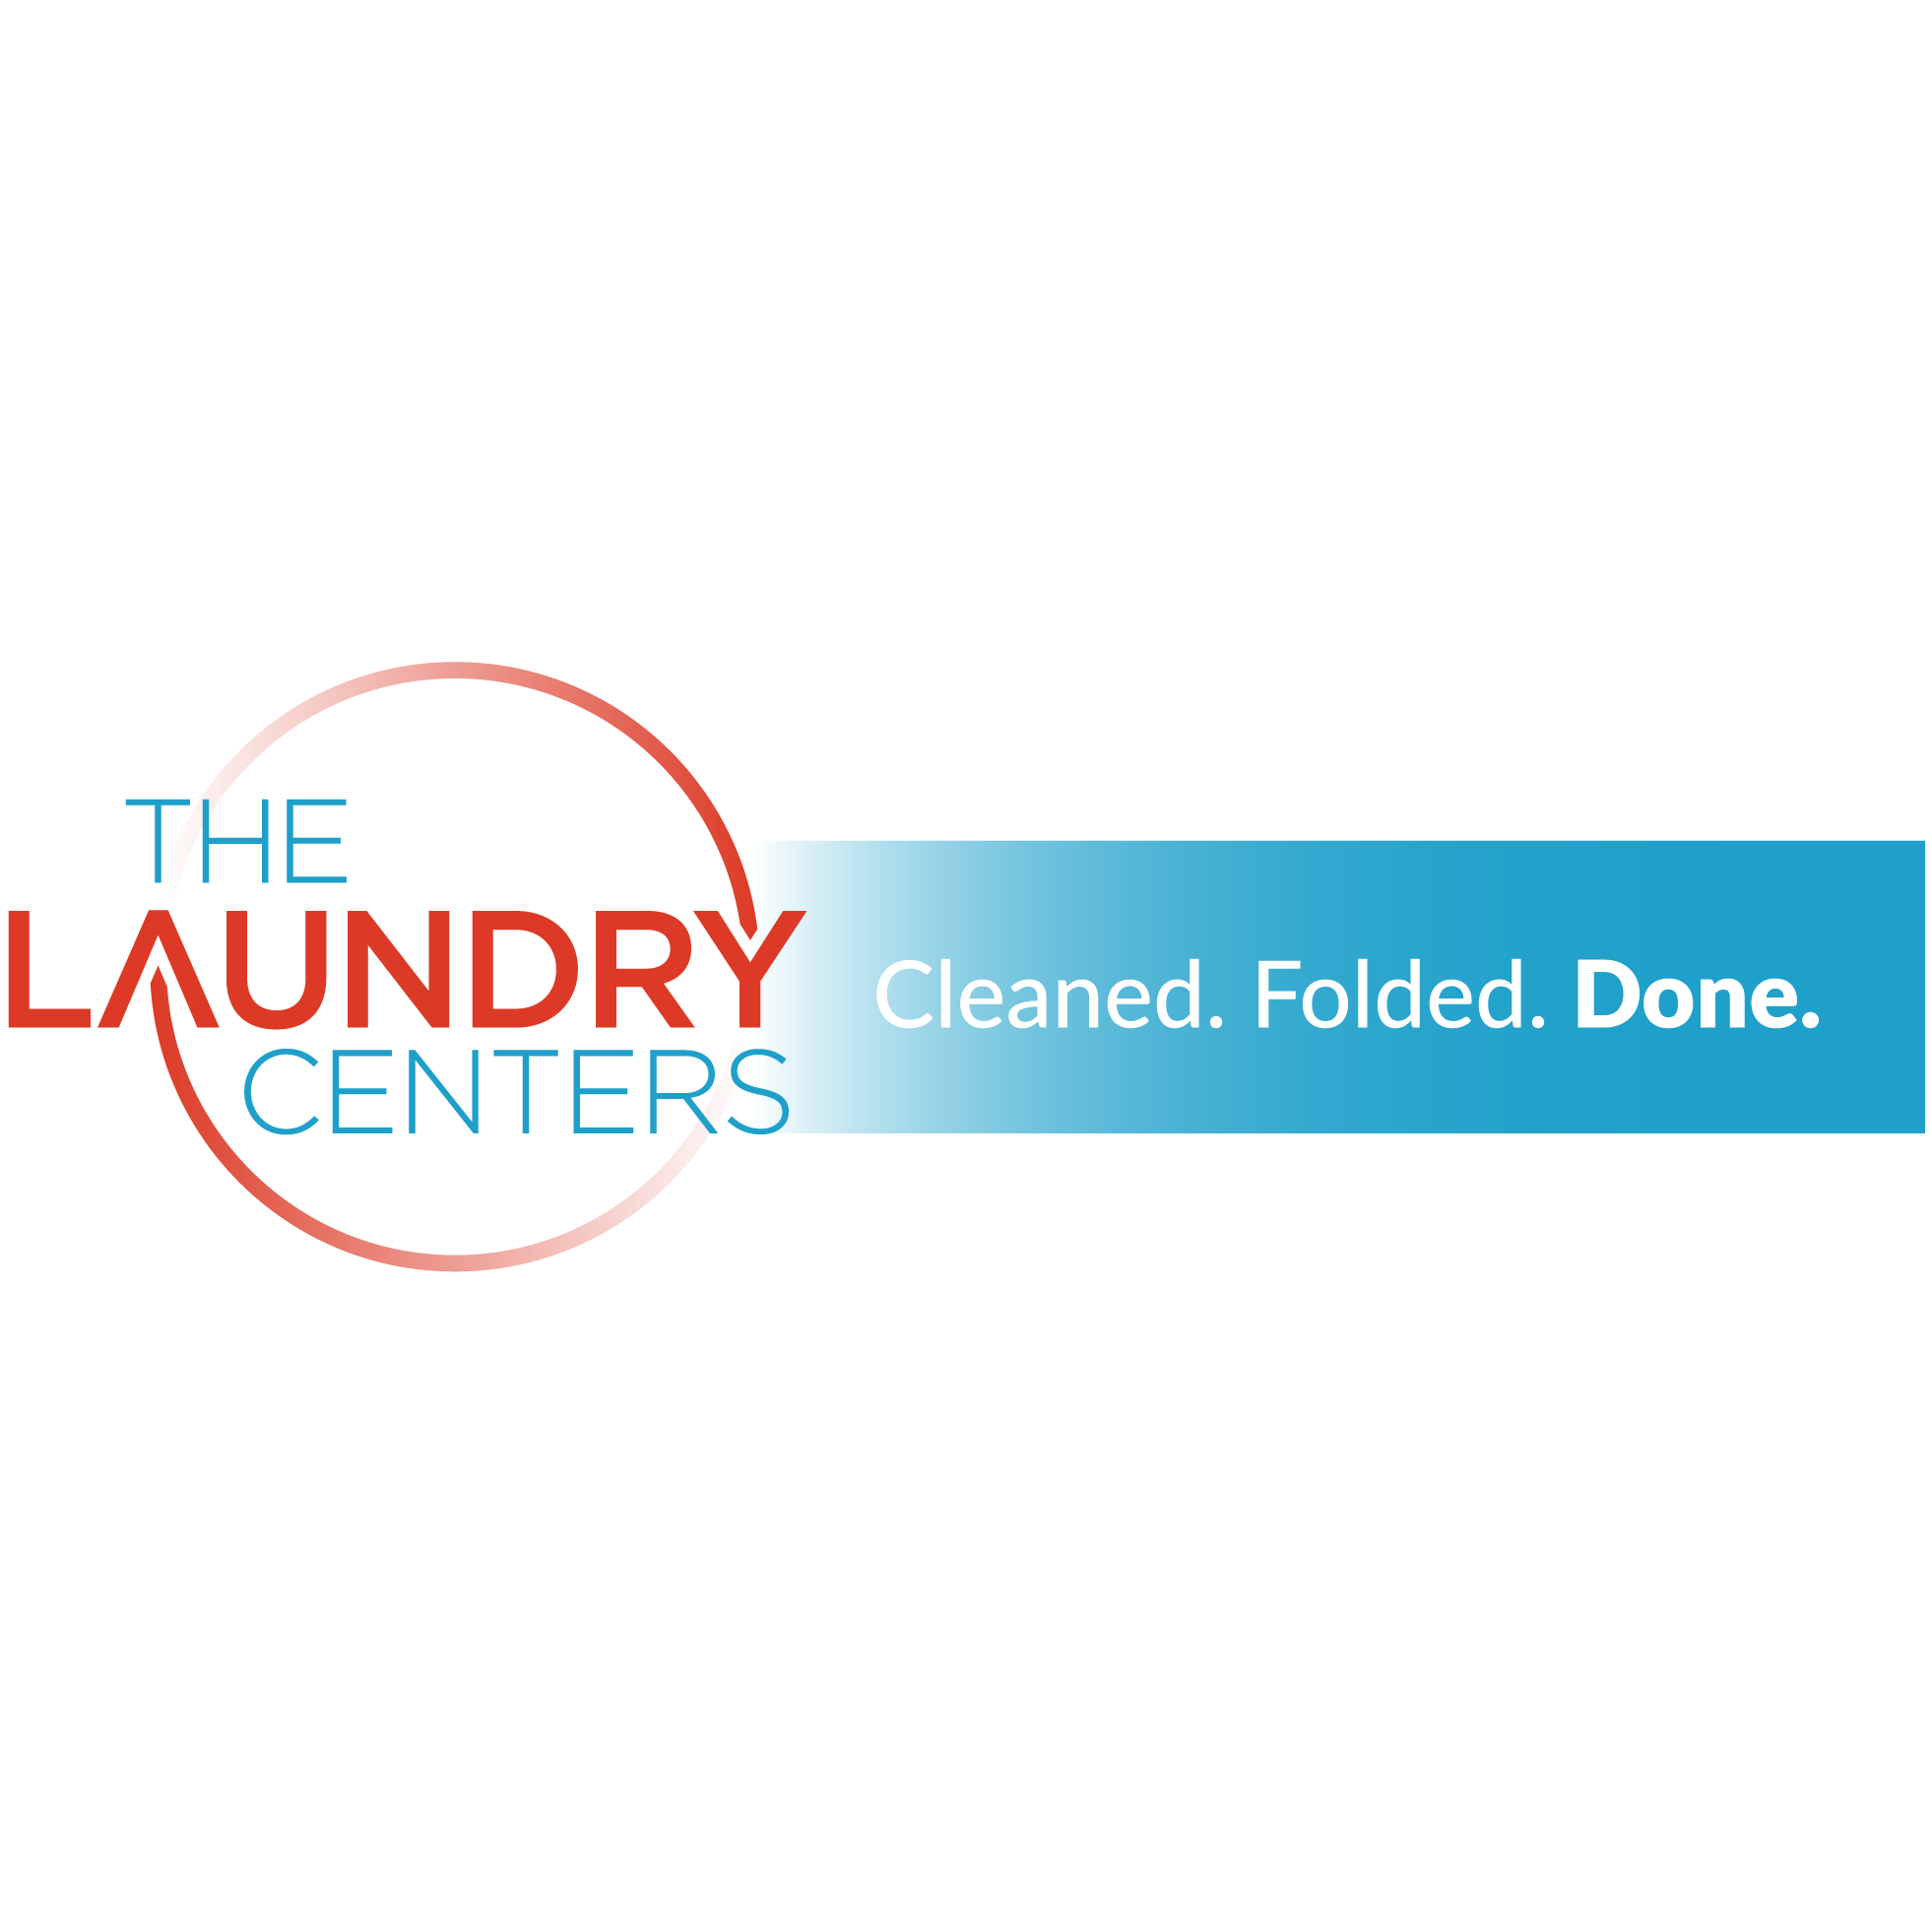 The Laundry Centers image 1